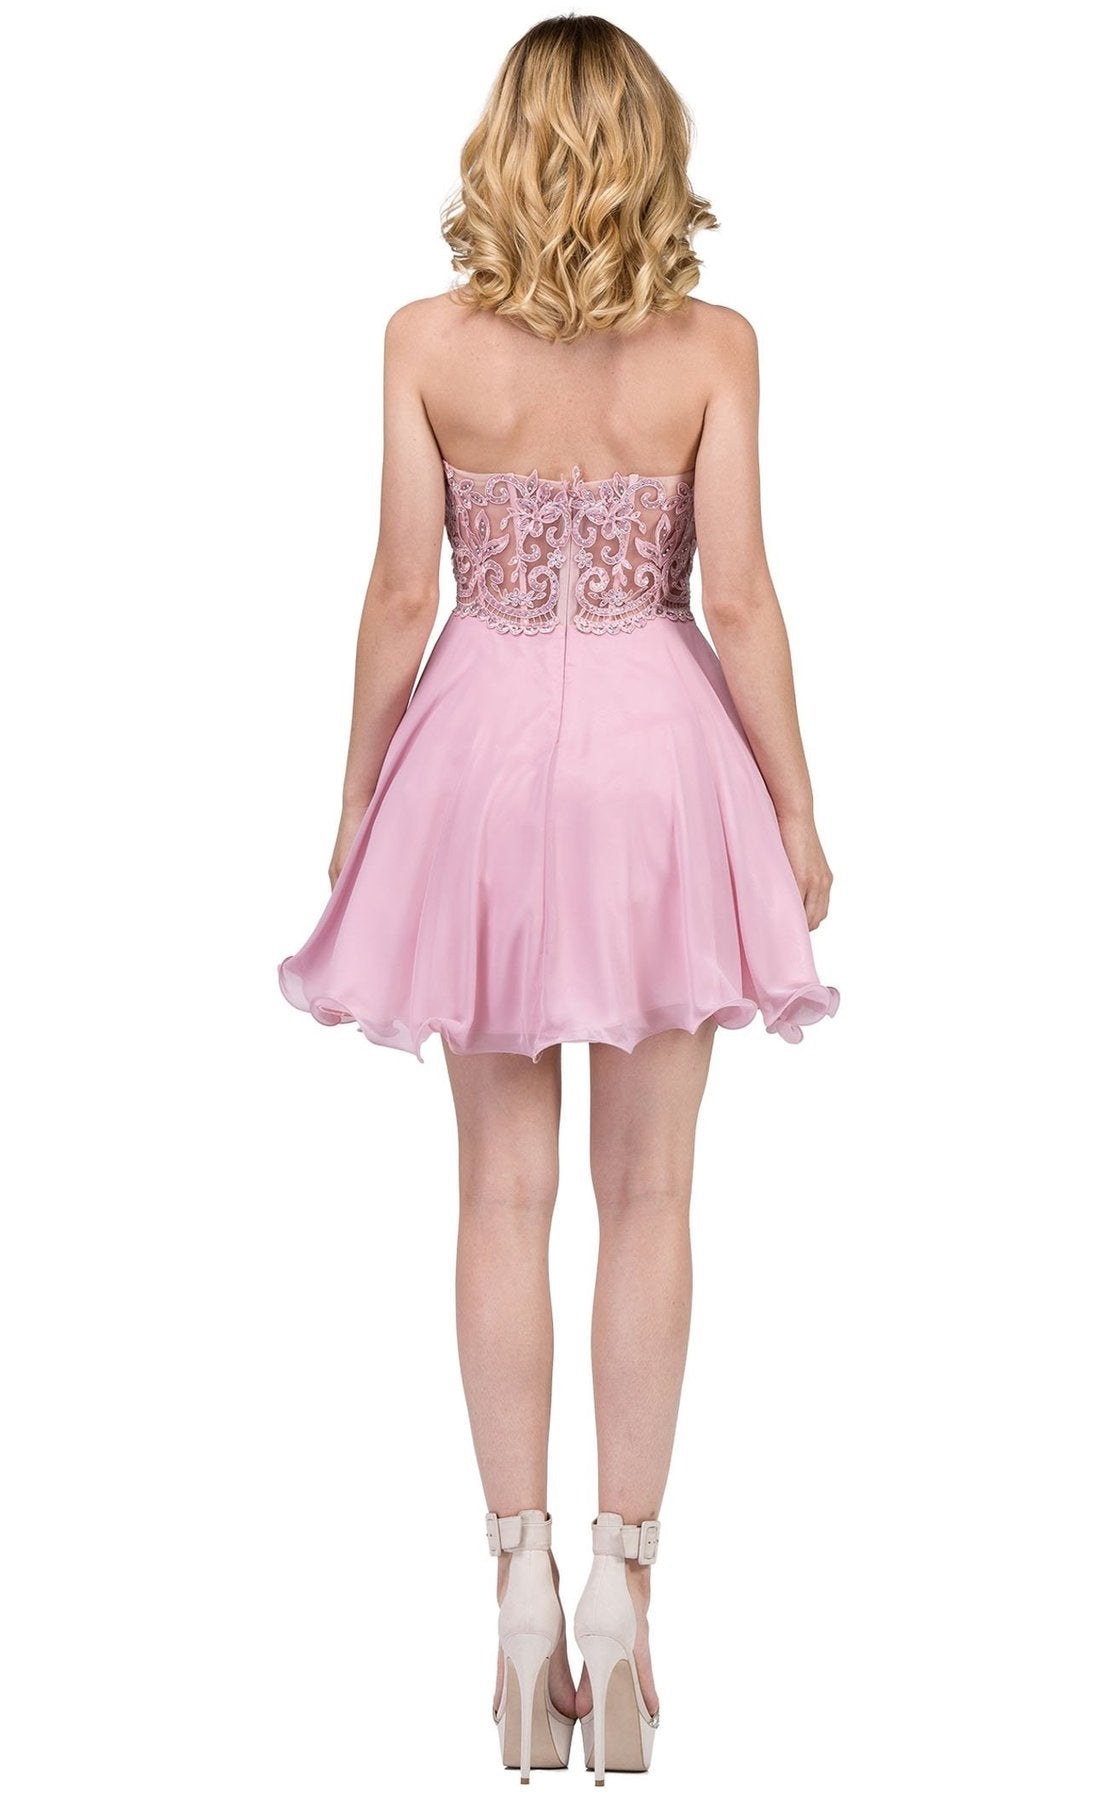 Dancing Queen - 3005SC Embellished Sweetheart A-Line Cocktail Dress